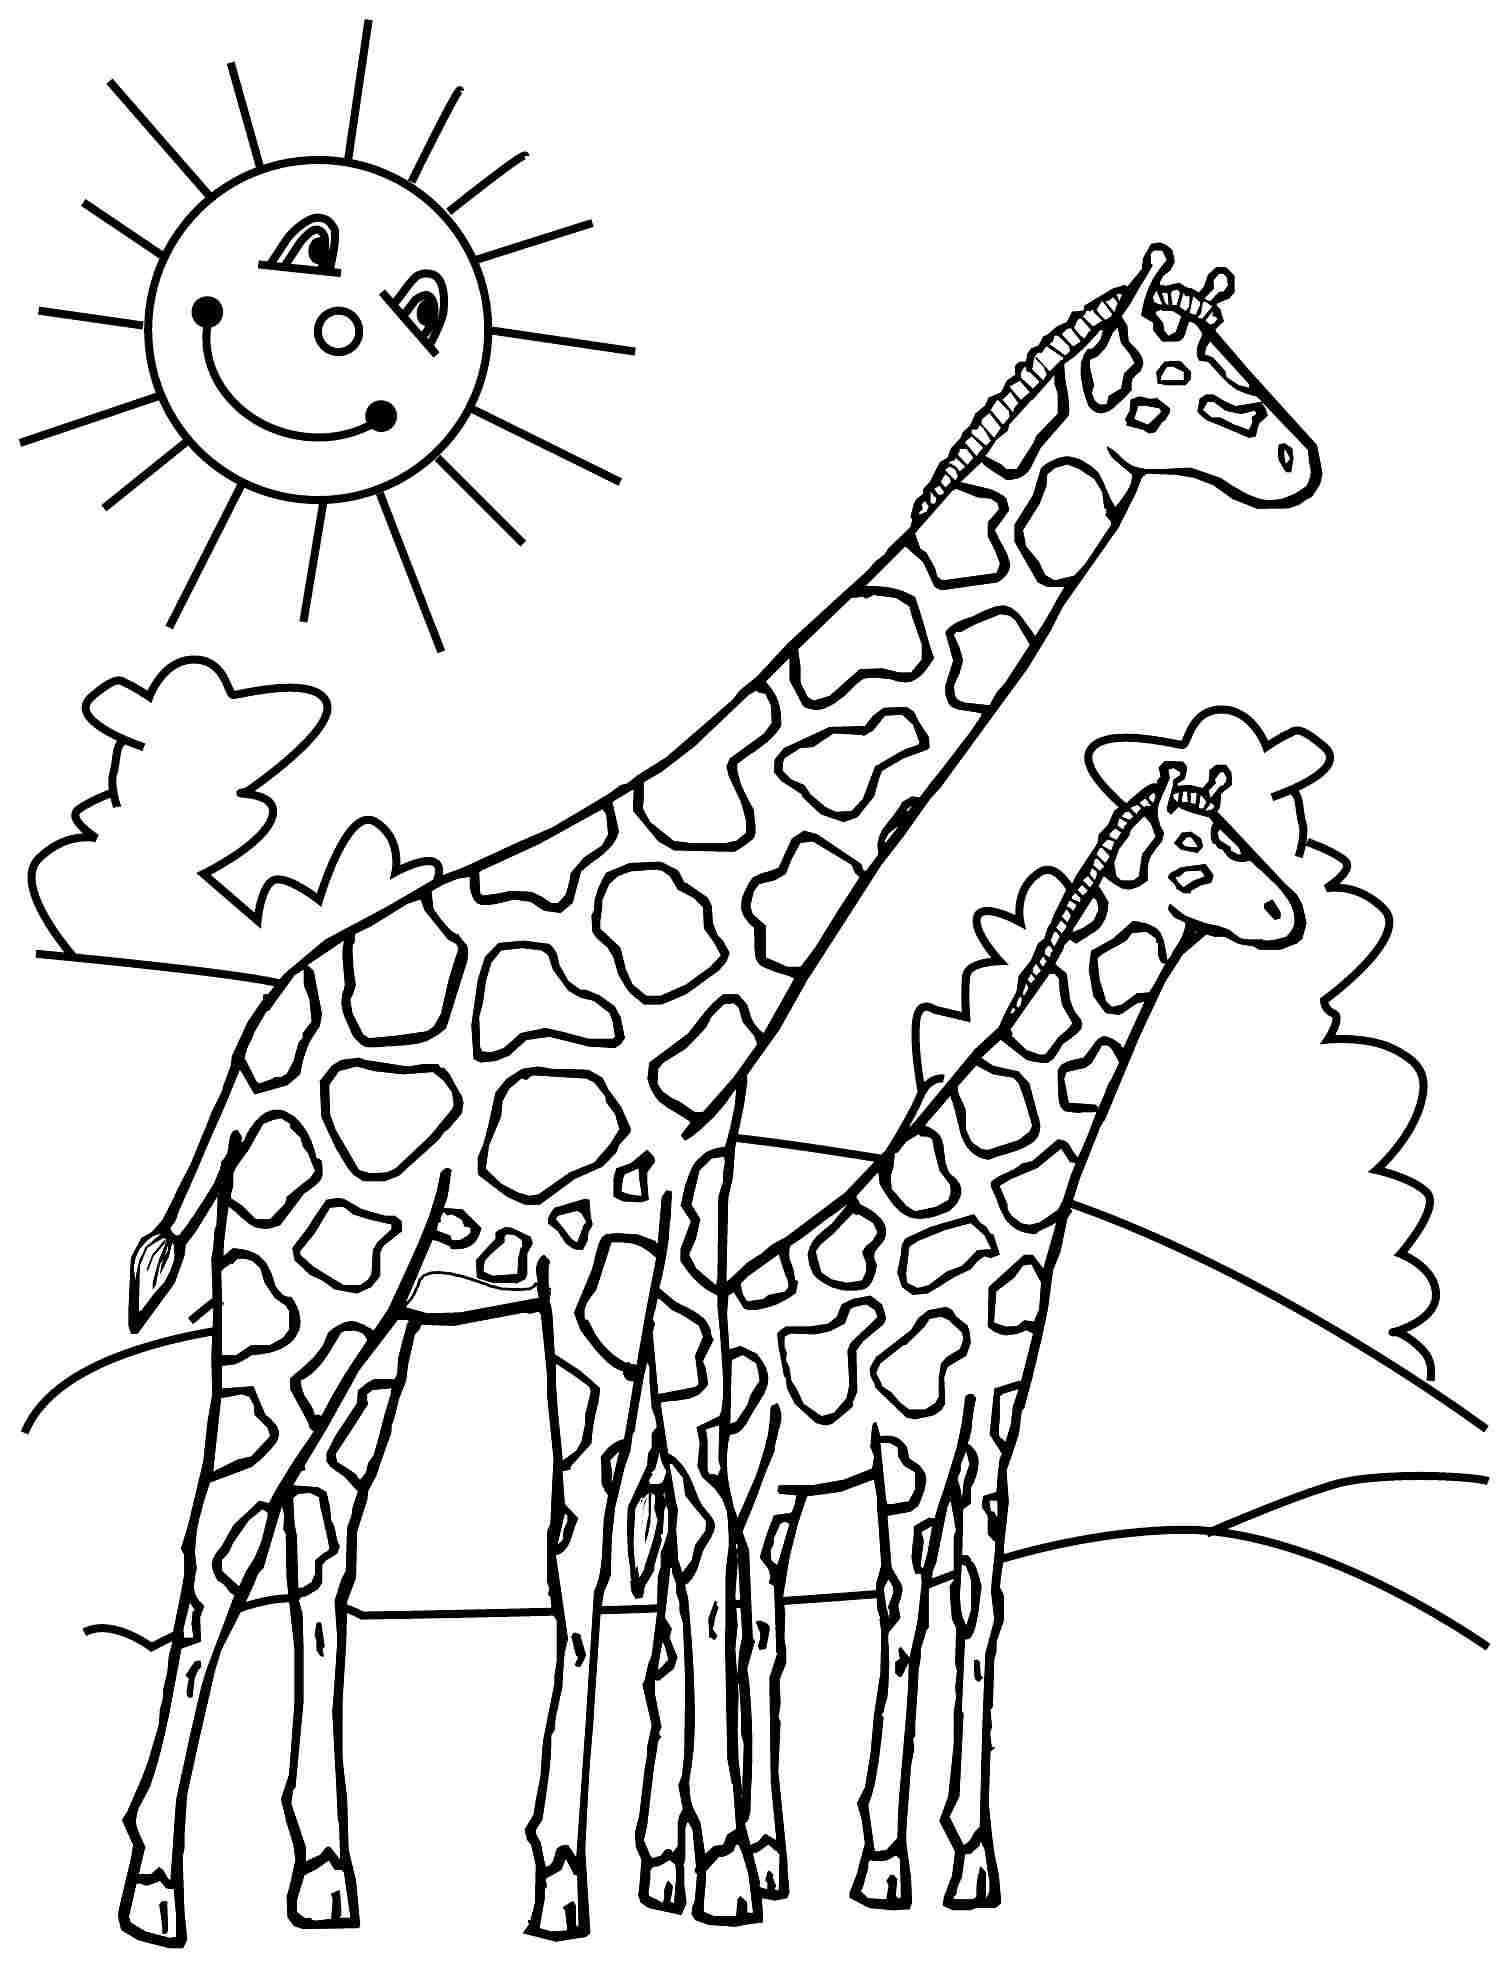 - 14 Coloring Pages Of Giraffe - Print Color Craft Print Color Craft